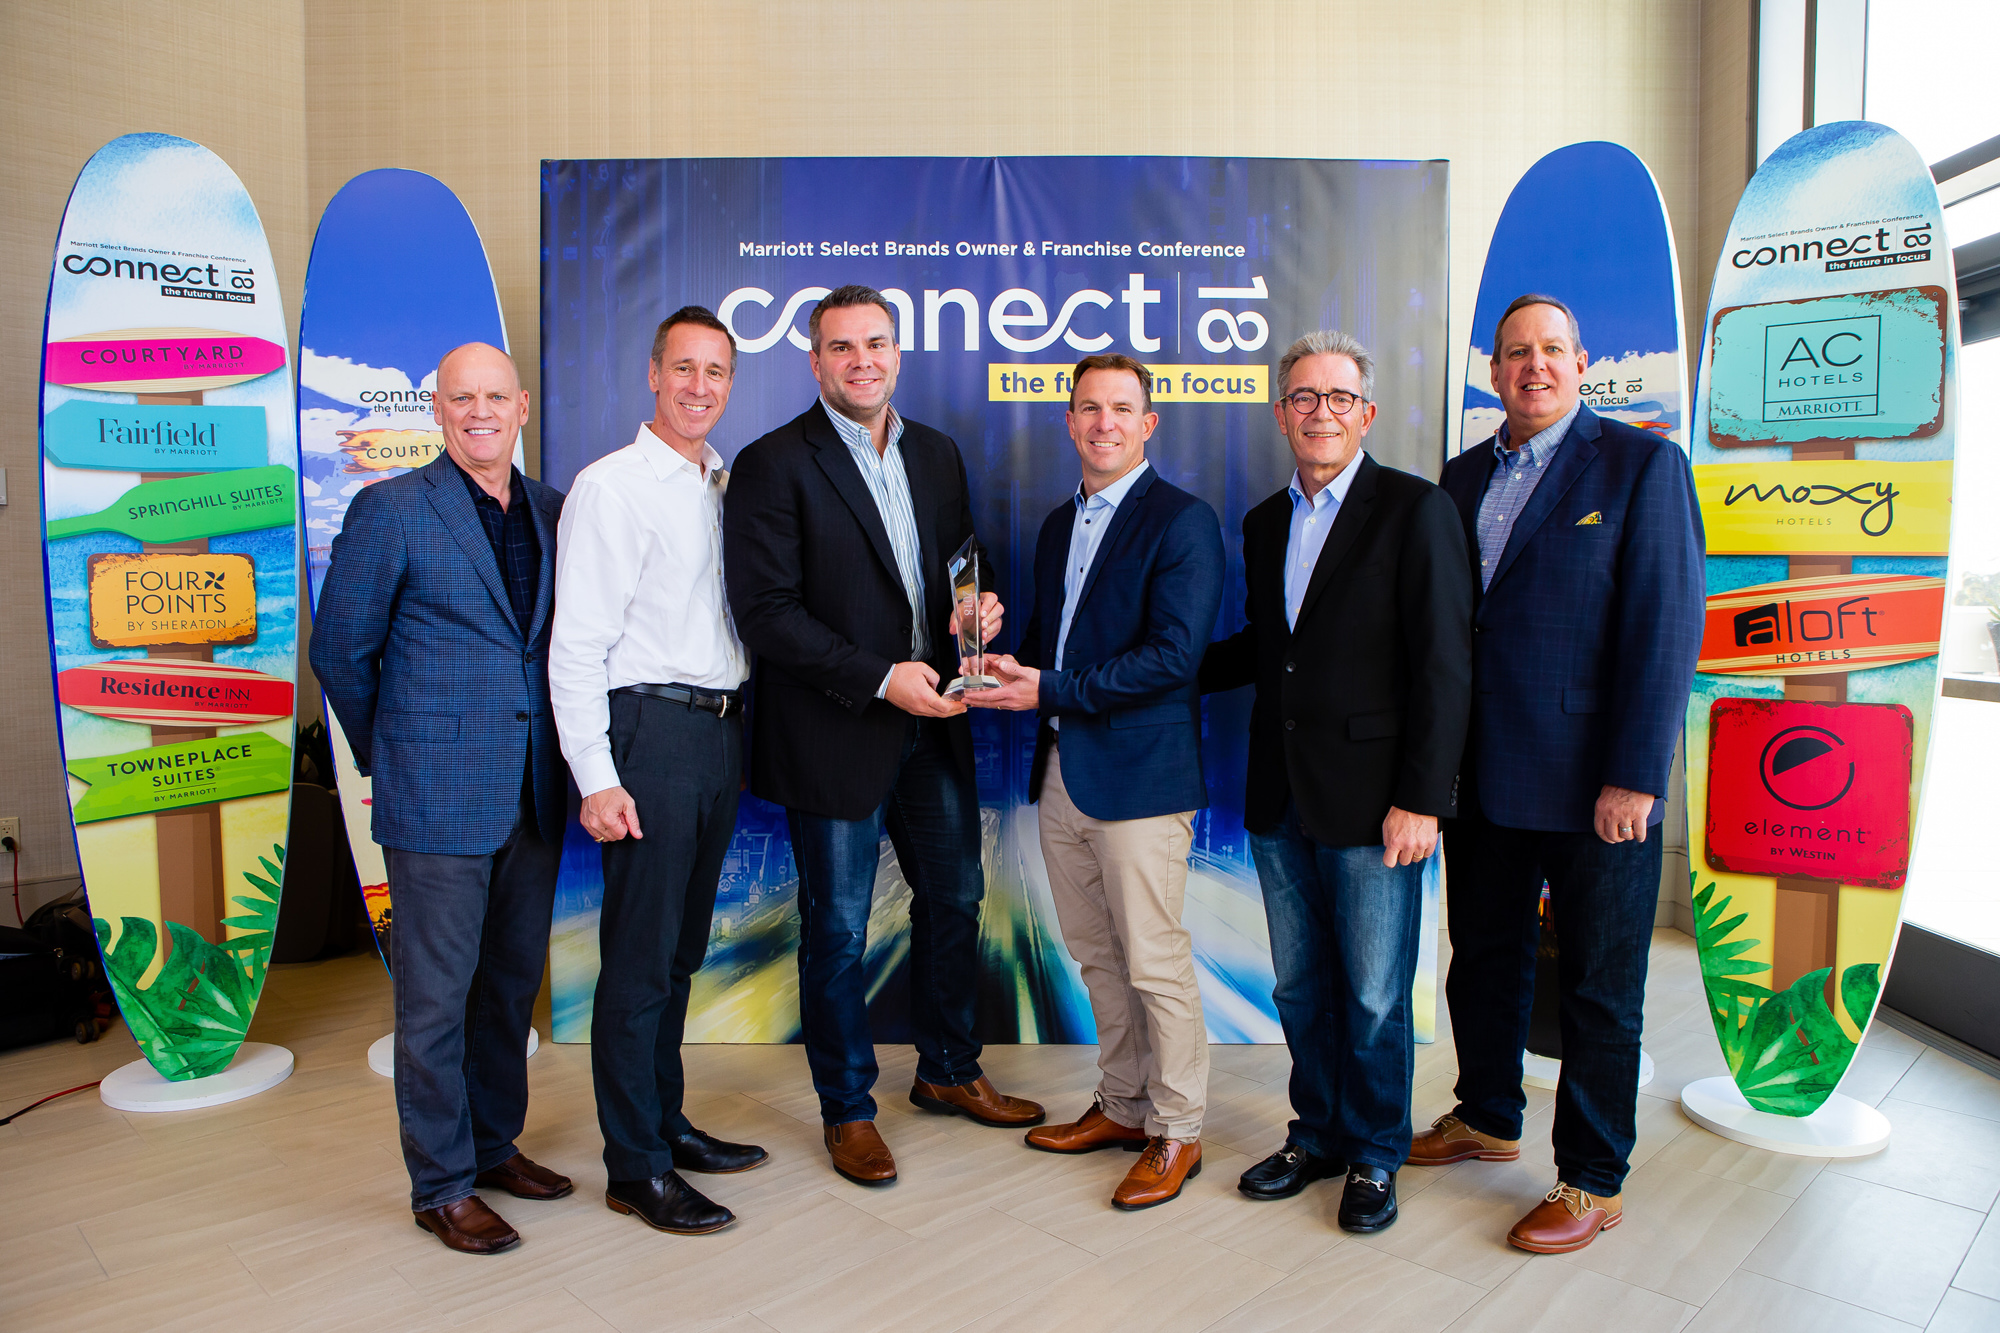 Pennbridge Lodging, a premier hotel development and management group, was recently presented Marriott's 2018 Horizon Award.